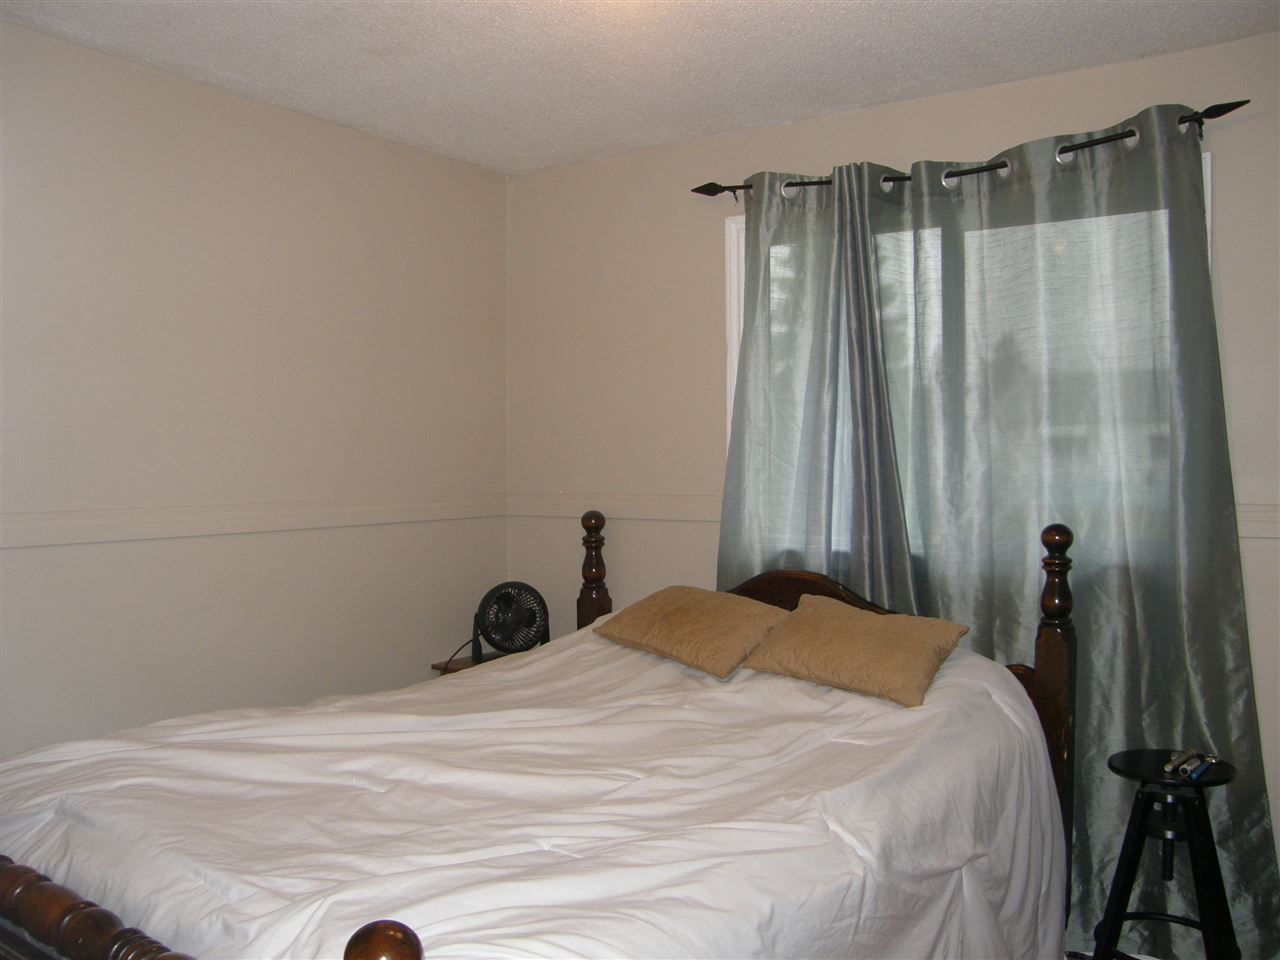 The third bedroom upstairs